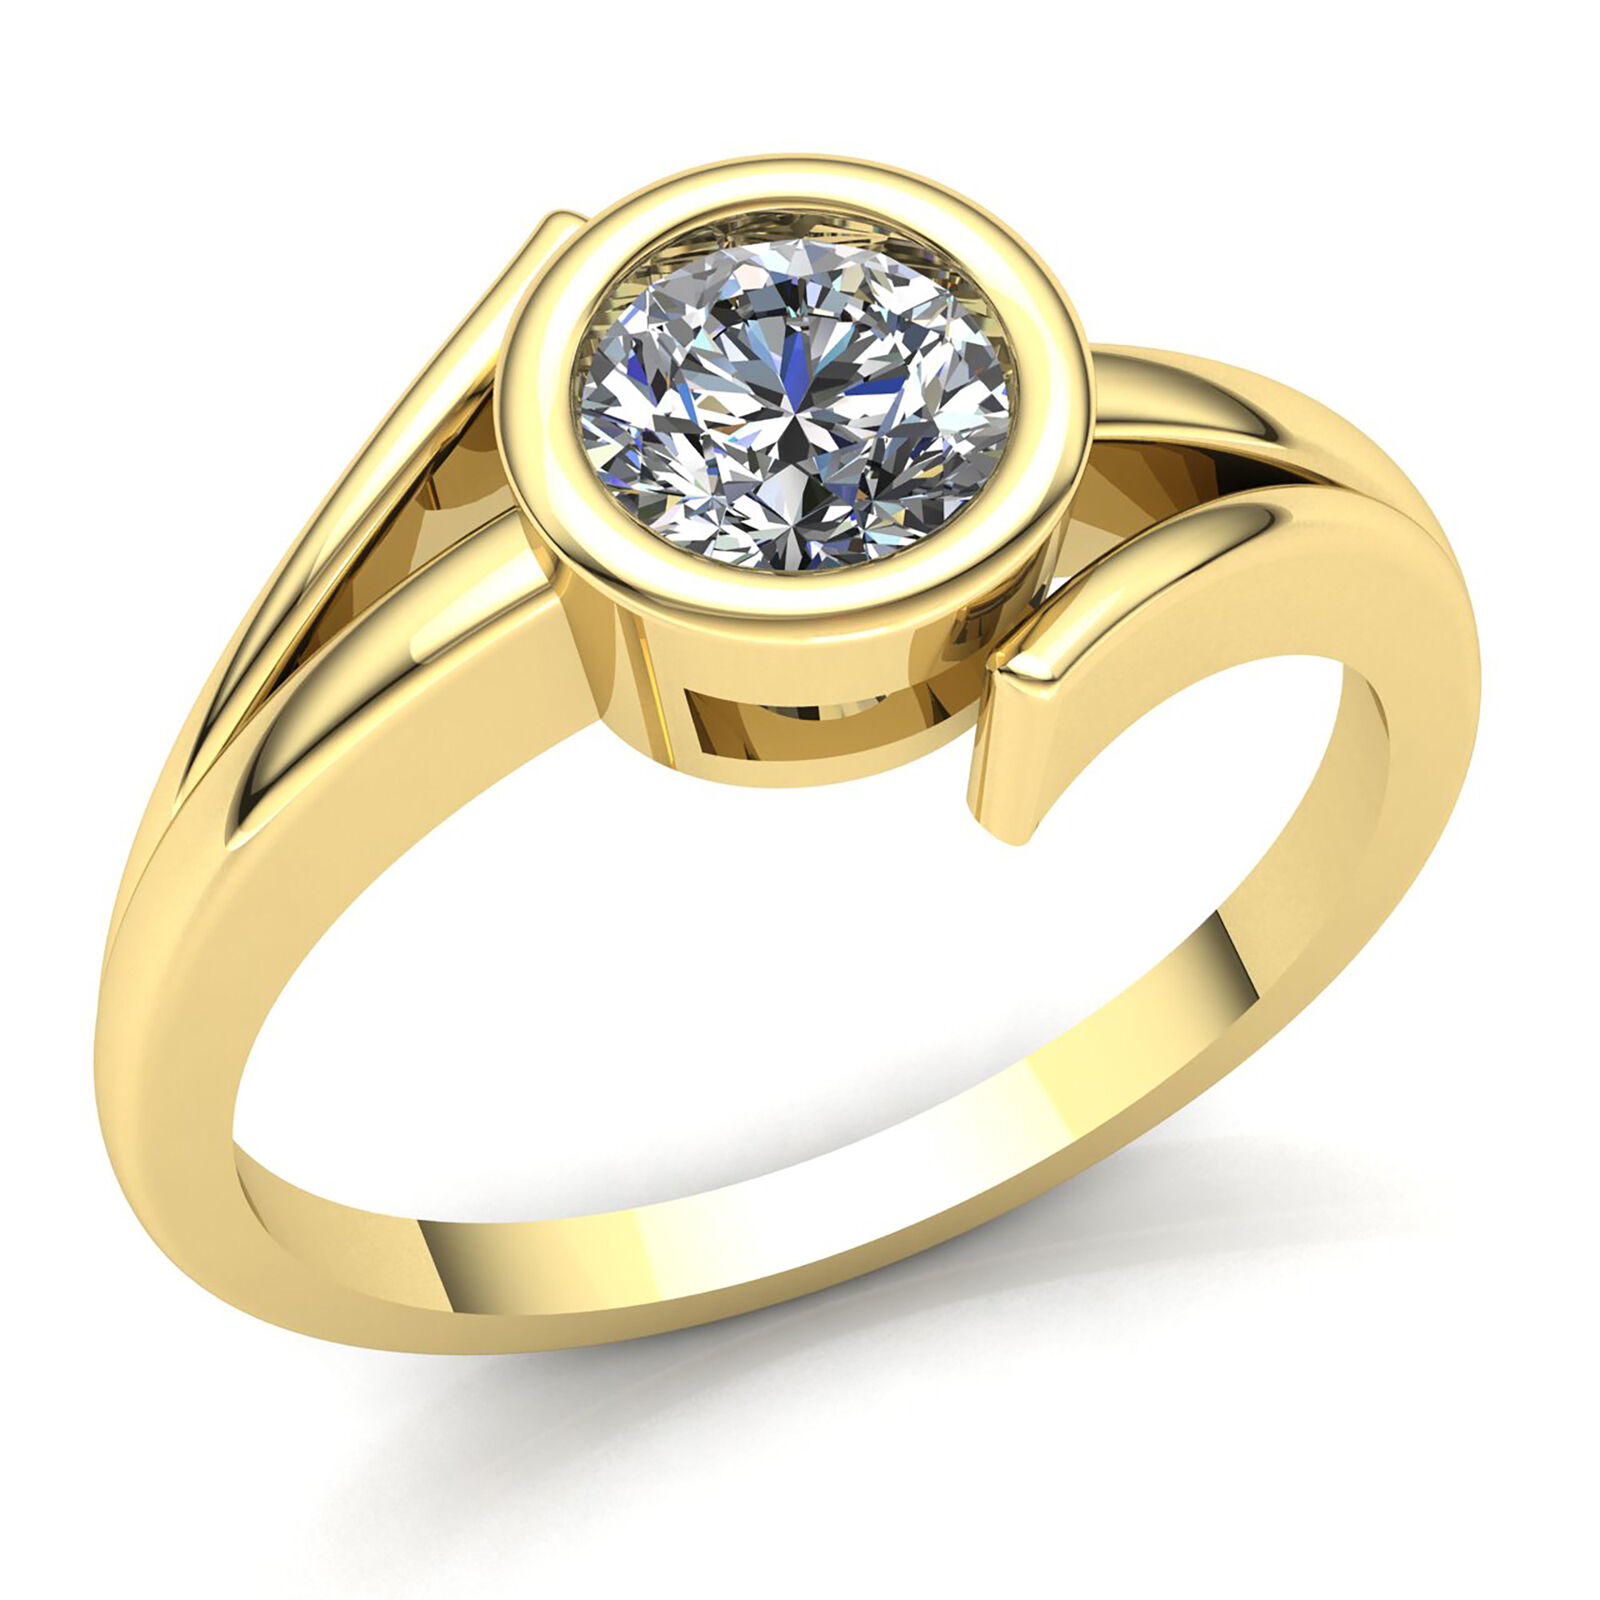 0.5ct Round Cut Diamond Ladies Solitaire Anniversary Engagement Ring 14K gold